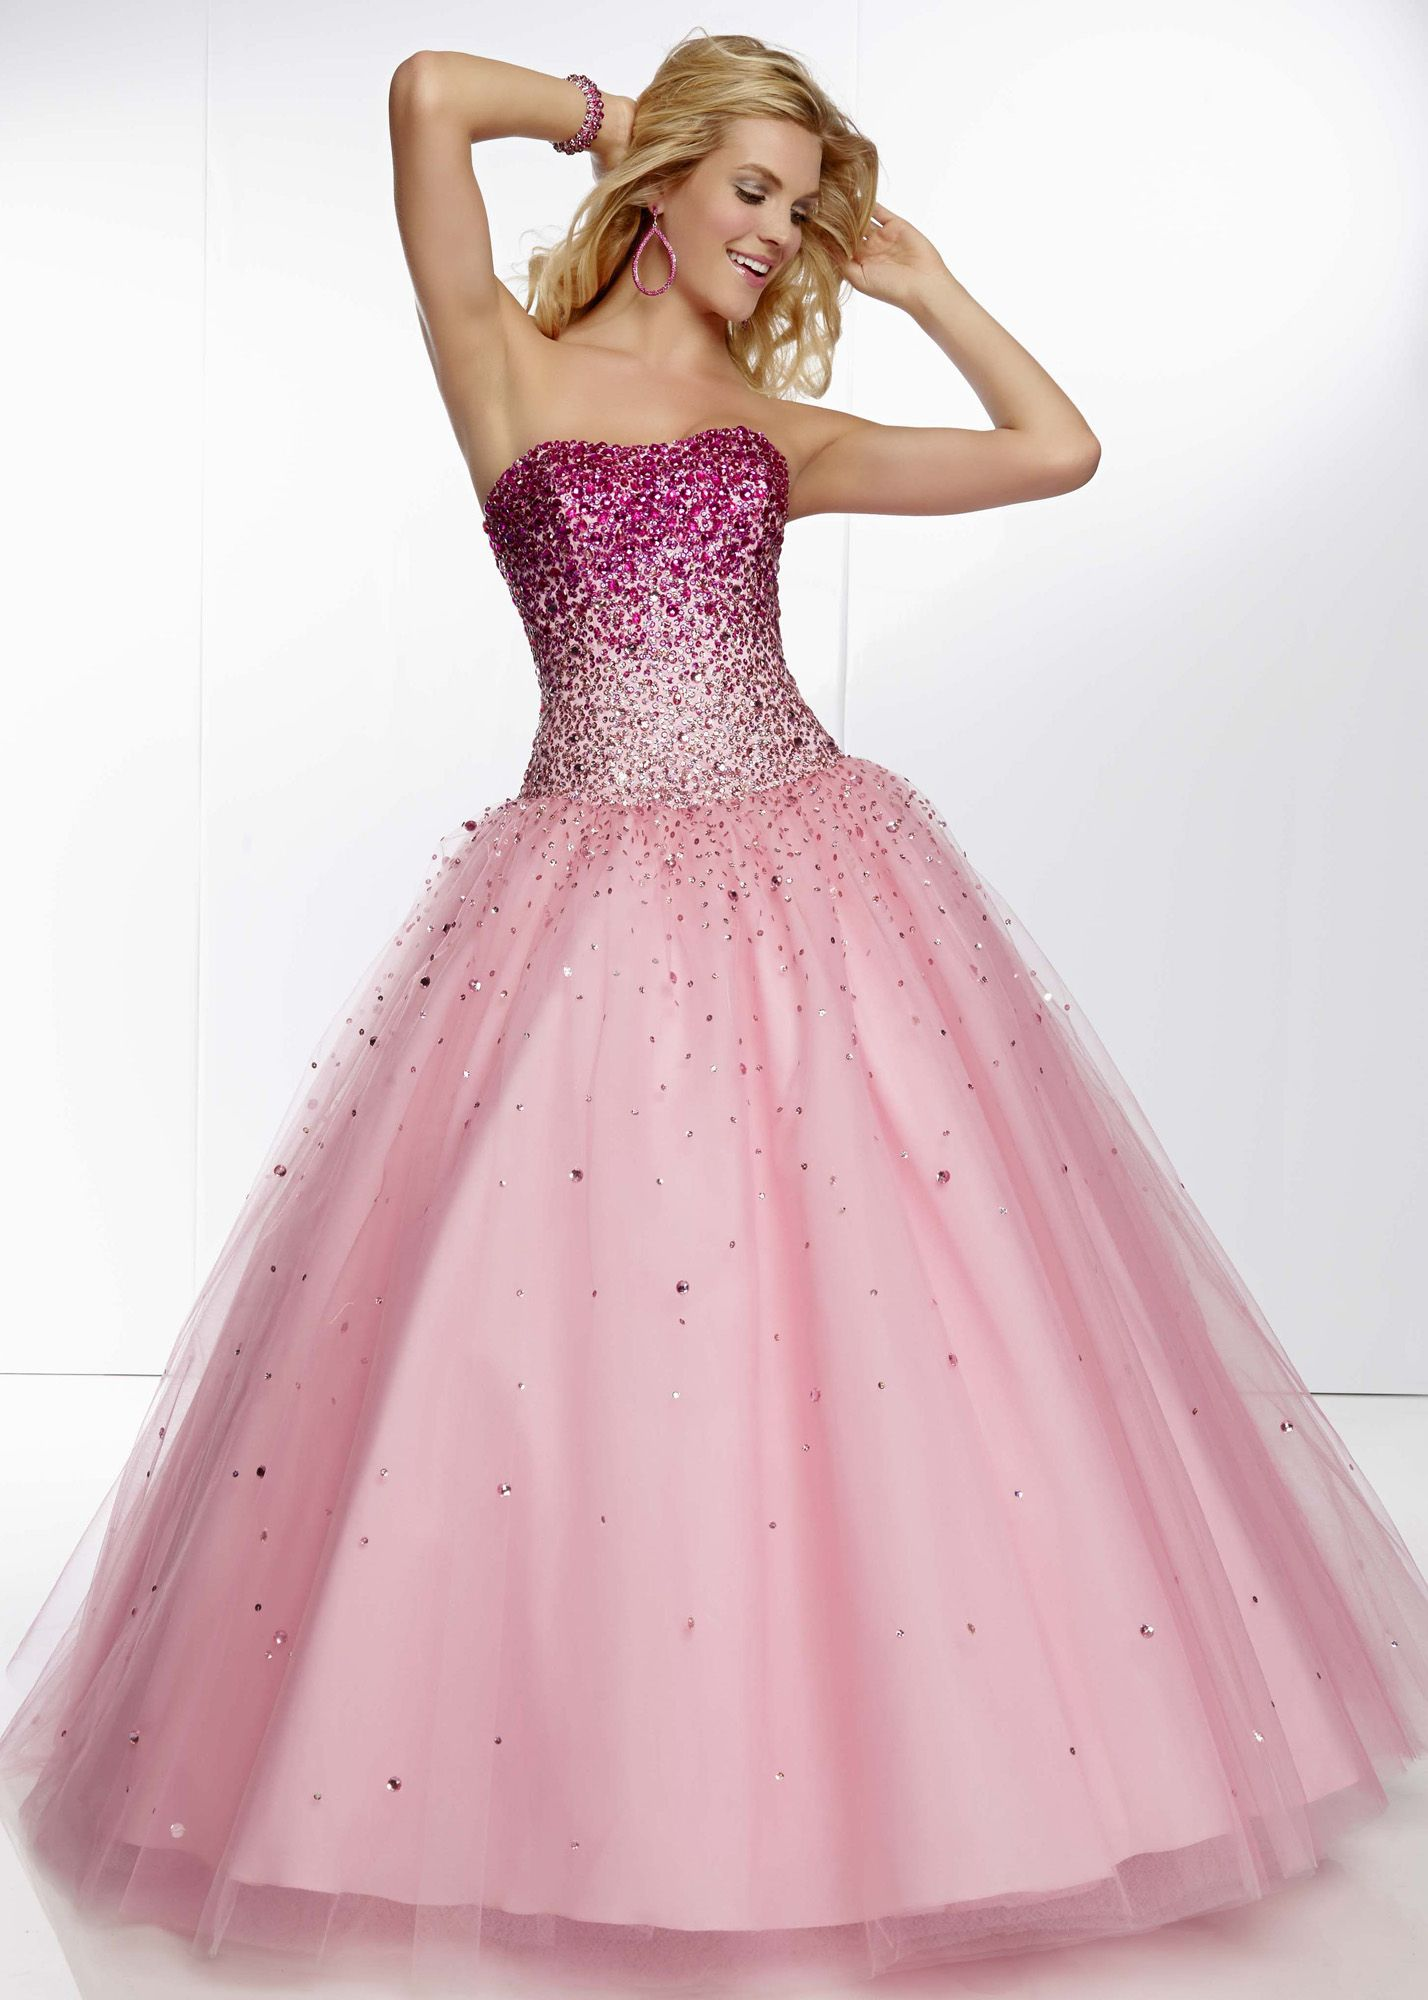 Mori Lee 95068 - Bubble Strapless Beaded Prom Dresses Online ...